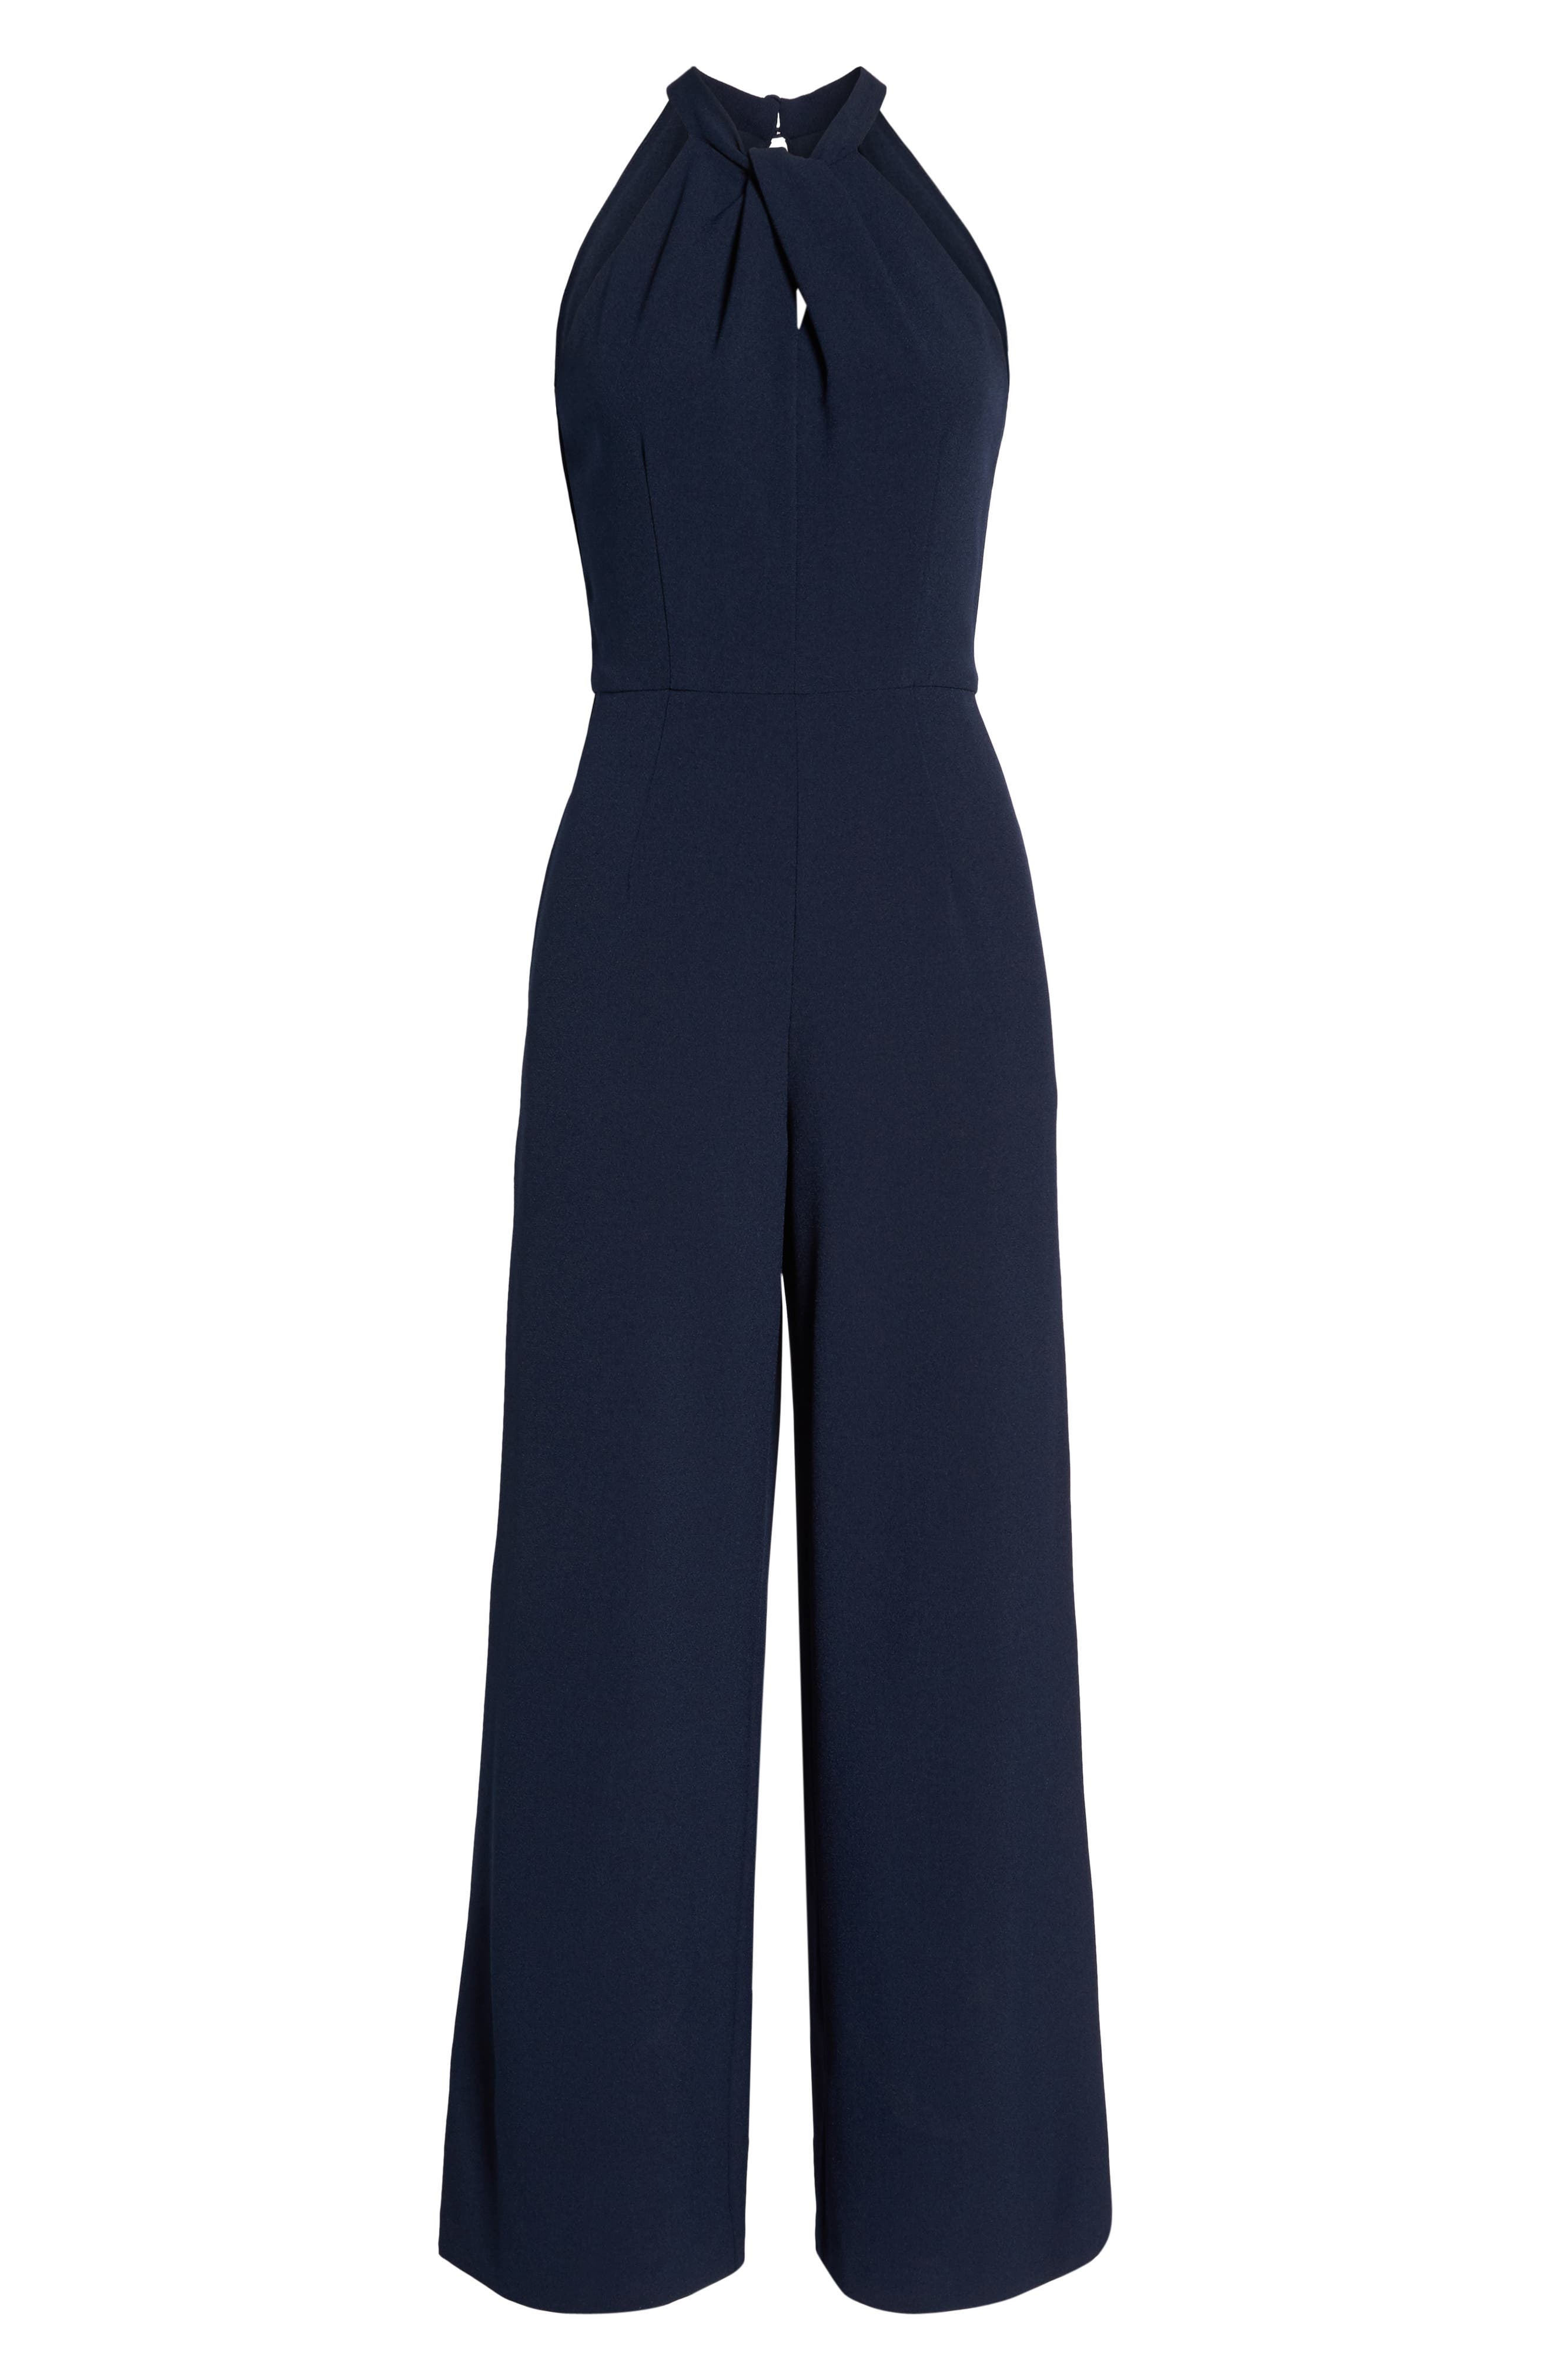 Halter Neck Jumpsuit,                             Alternate thumbnail 7, color,                             NAVY